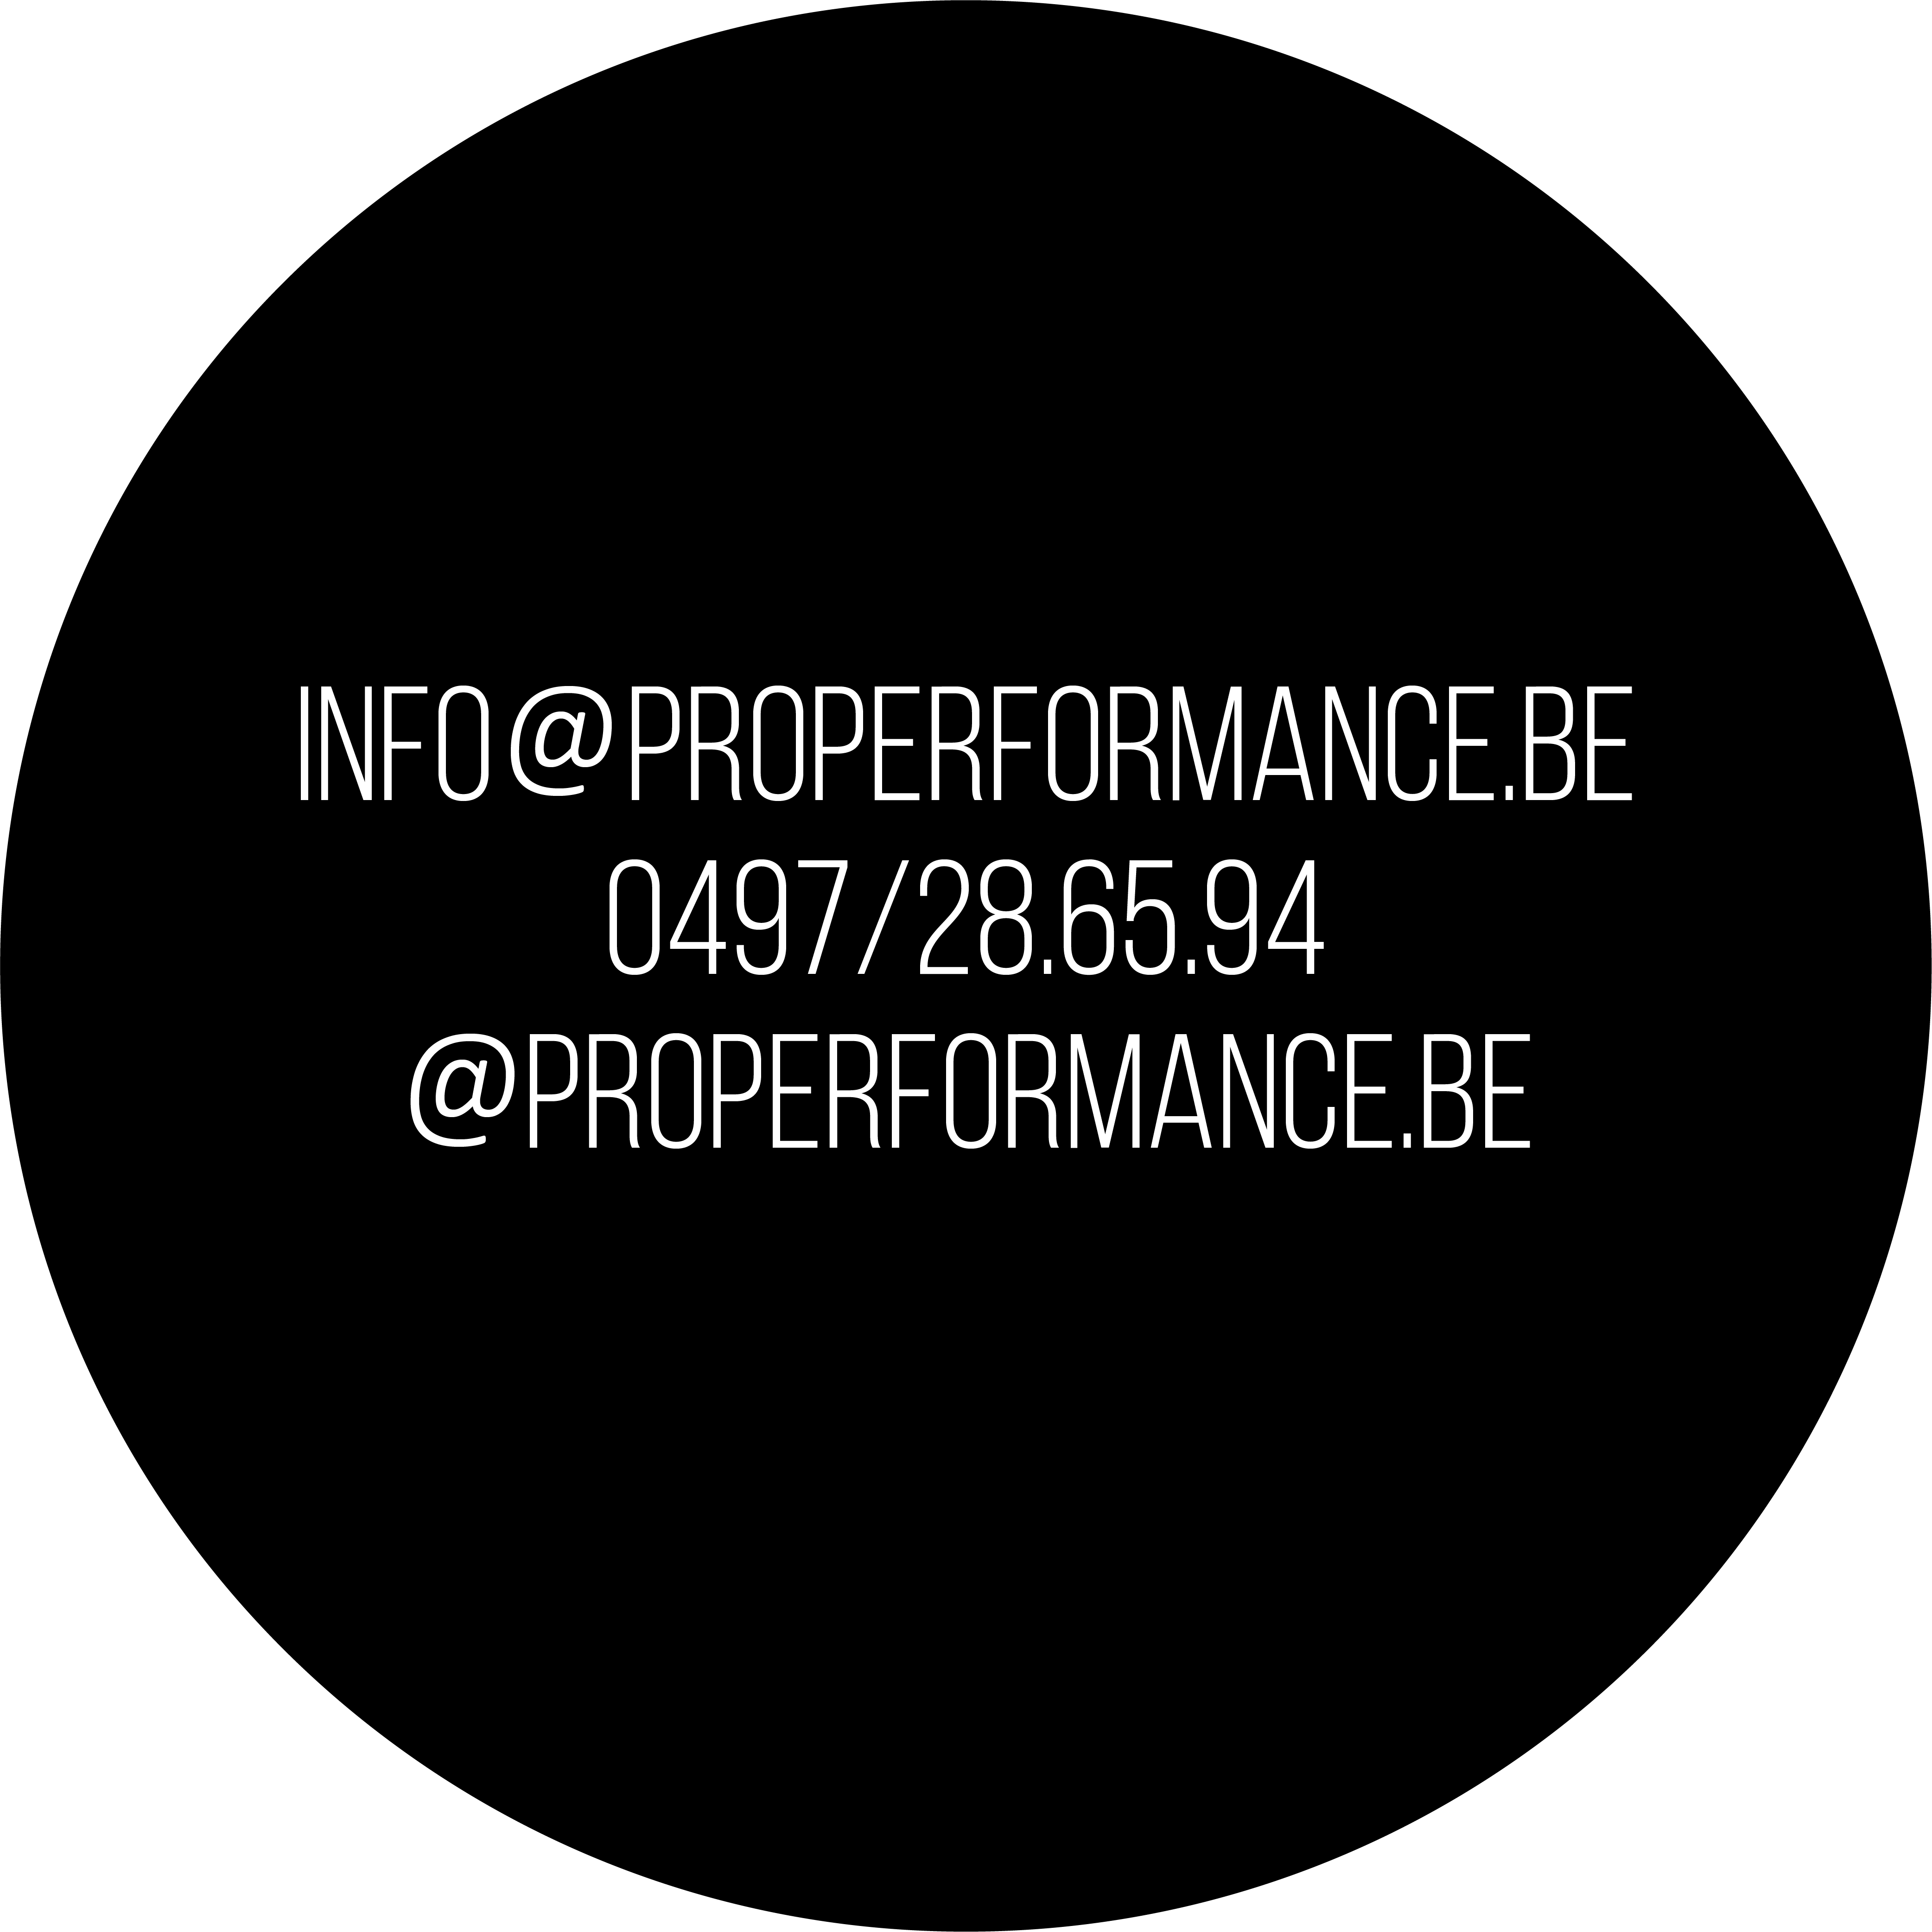 Properformance Logo Adres